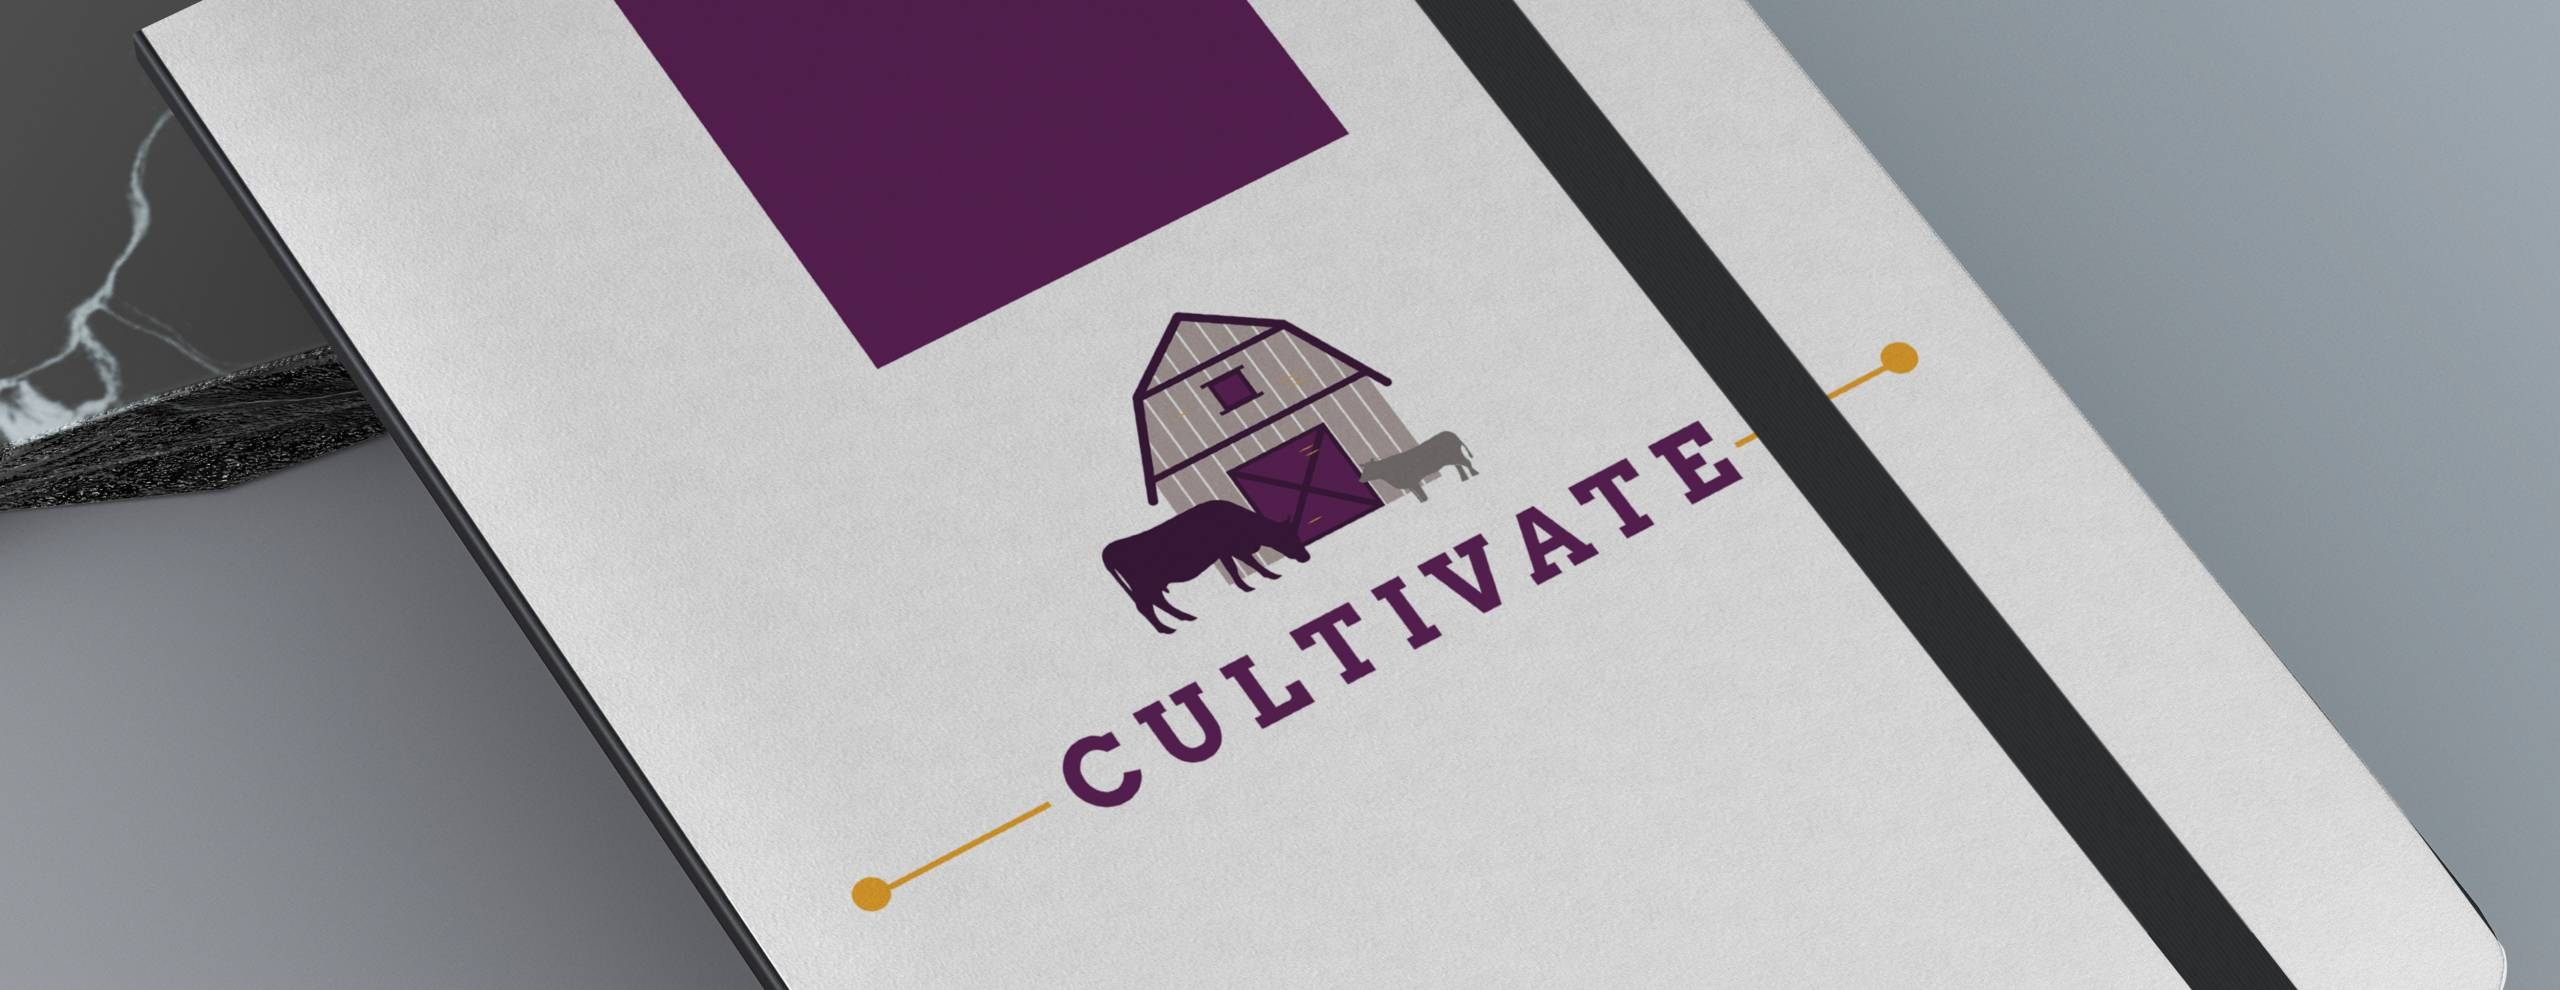 cultivate-8-scaled-1